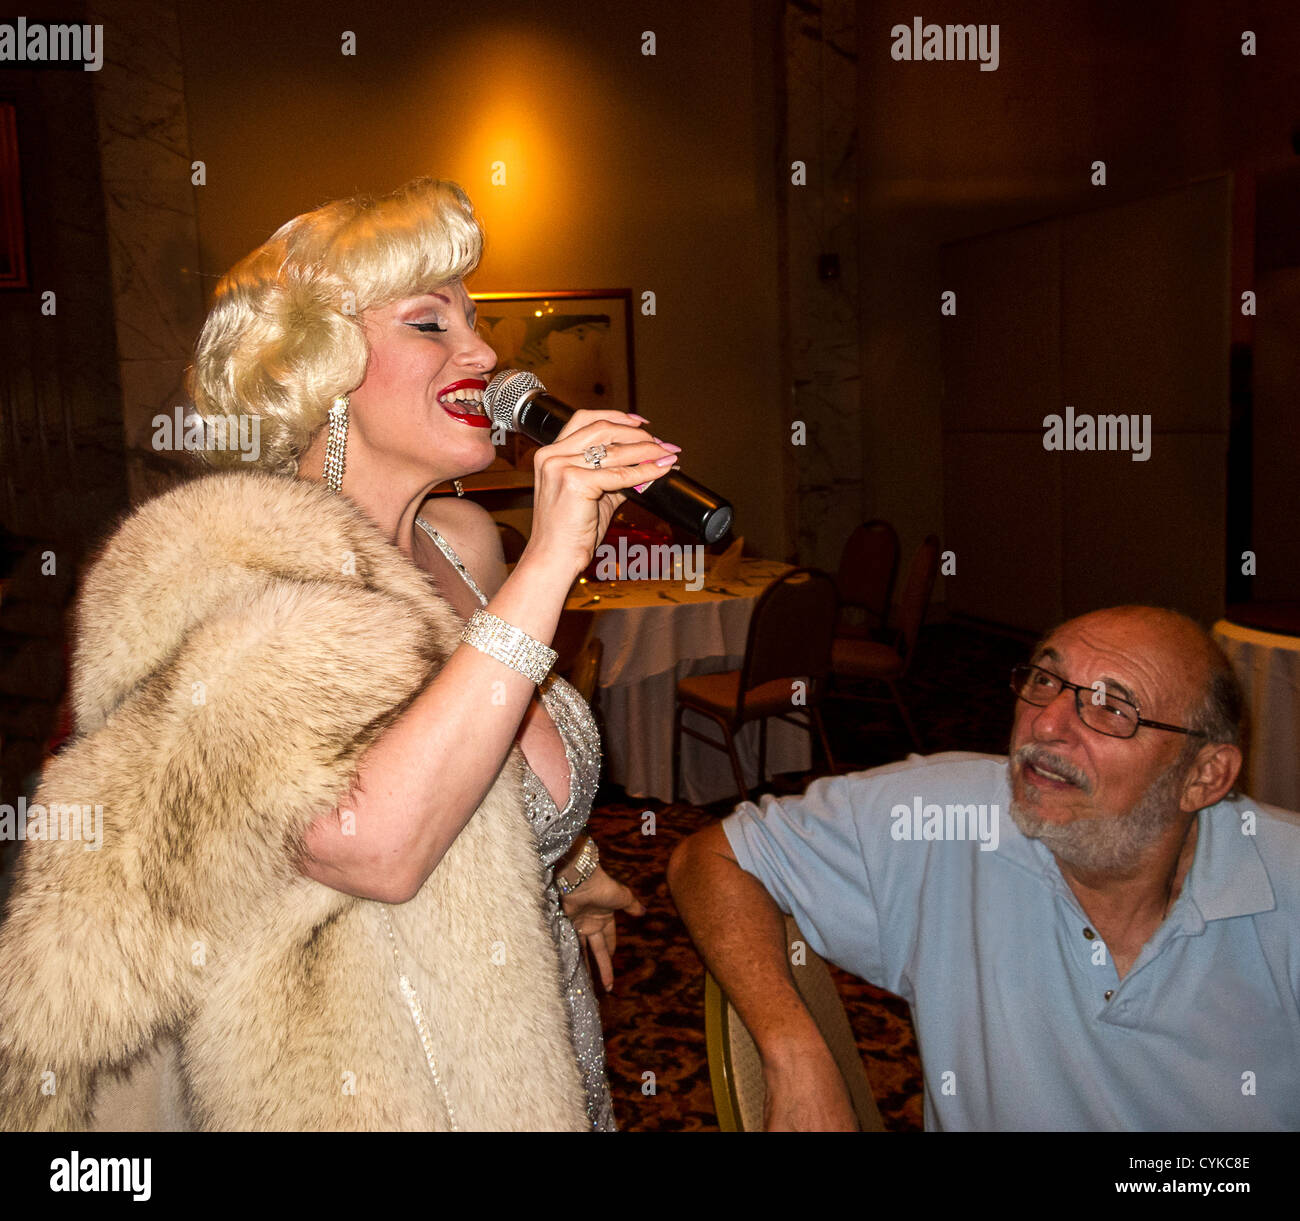 Marilyn Monroe impersonator sings to middle aged man at 1950s retro, art deco era party. - Stock Image